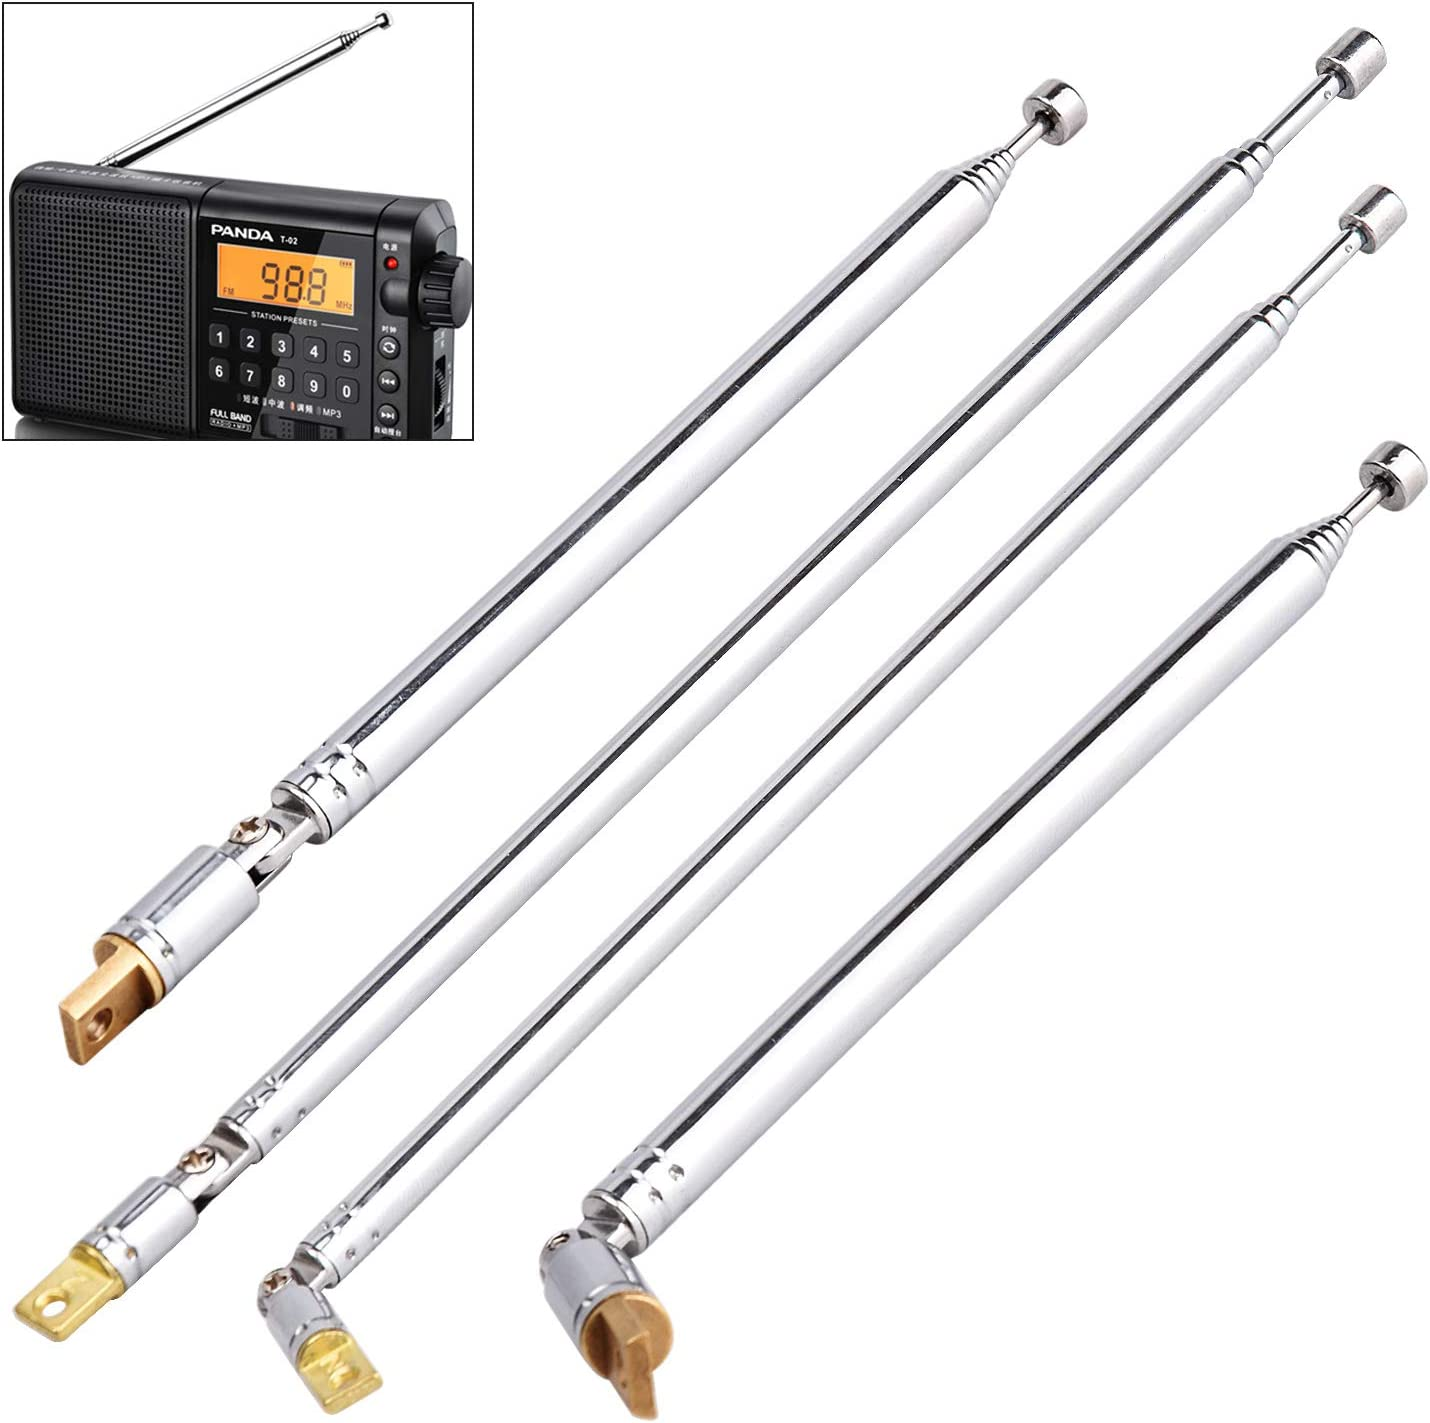 """2 Pair AM FM Radio Universal Antenna, 62.5cm 24.6"""" Length 4 Section & 77cm 30"""" Length 7 Section Telescopic Stainless Steel Replacement Antenna Aerial for Radio TV (2 Size)"""